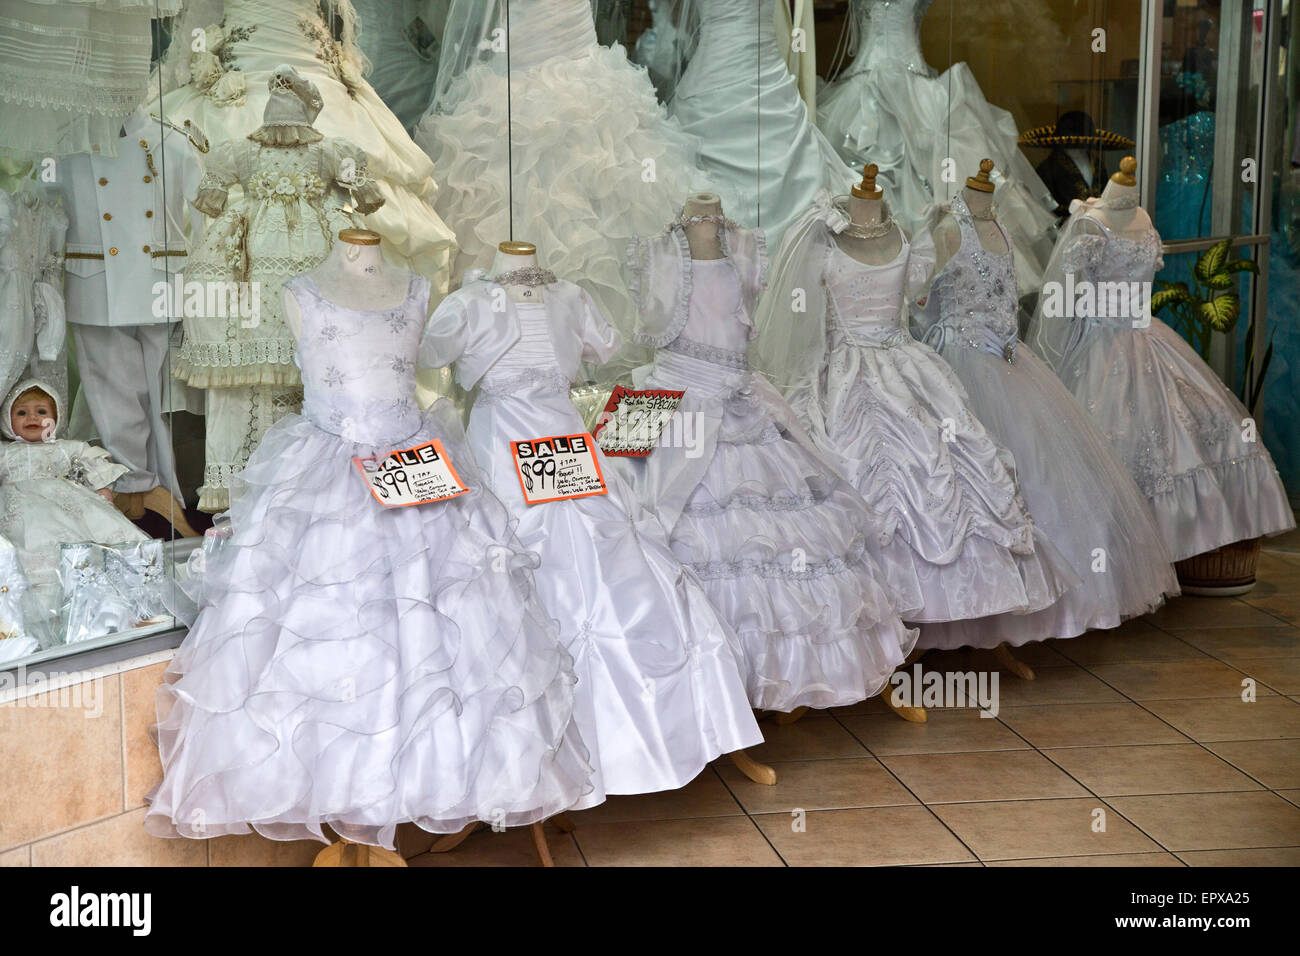 Los Angeles Wedding Gowns - Stock Image